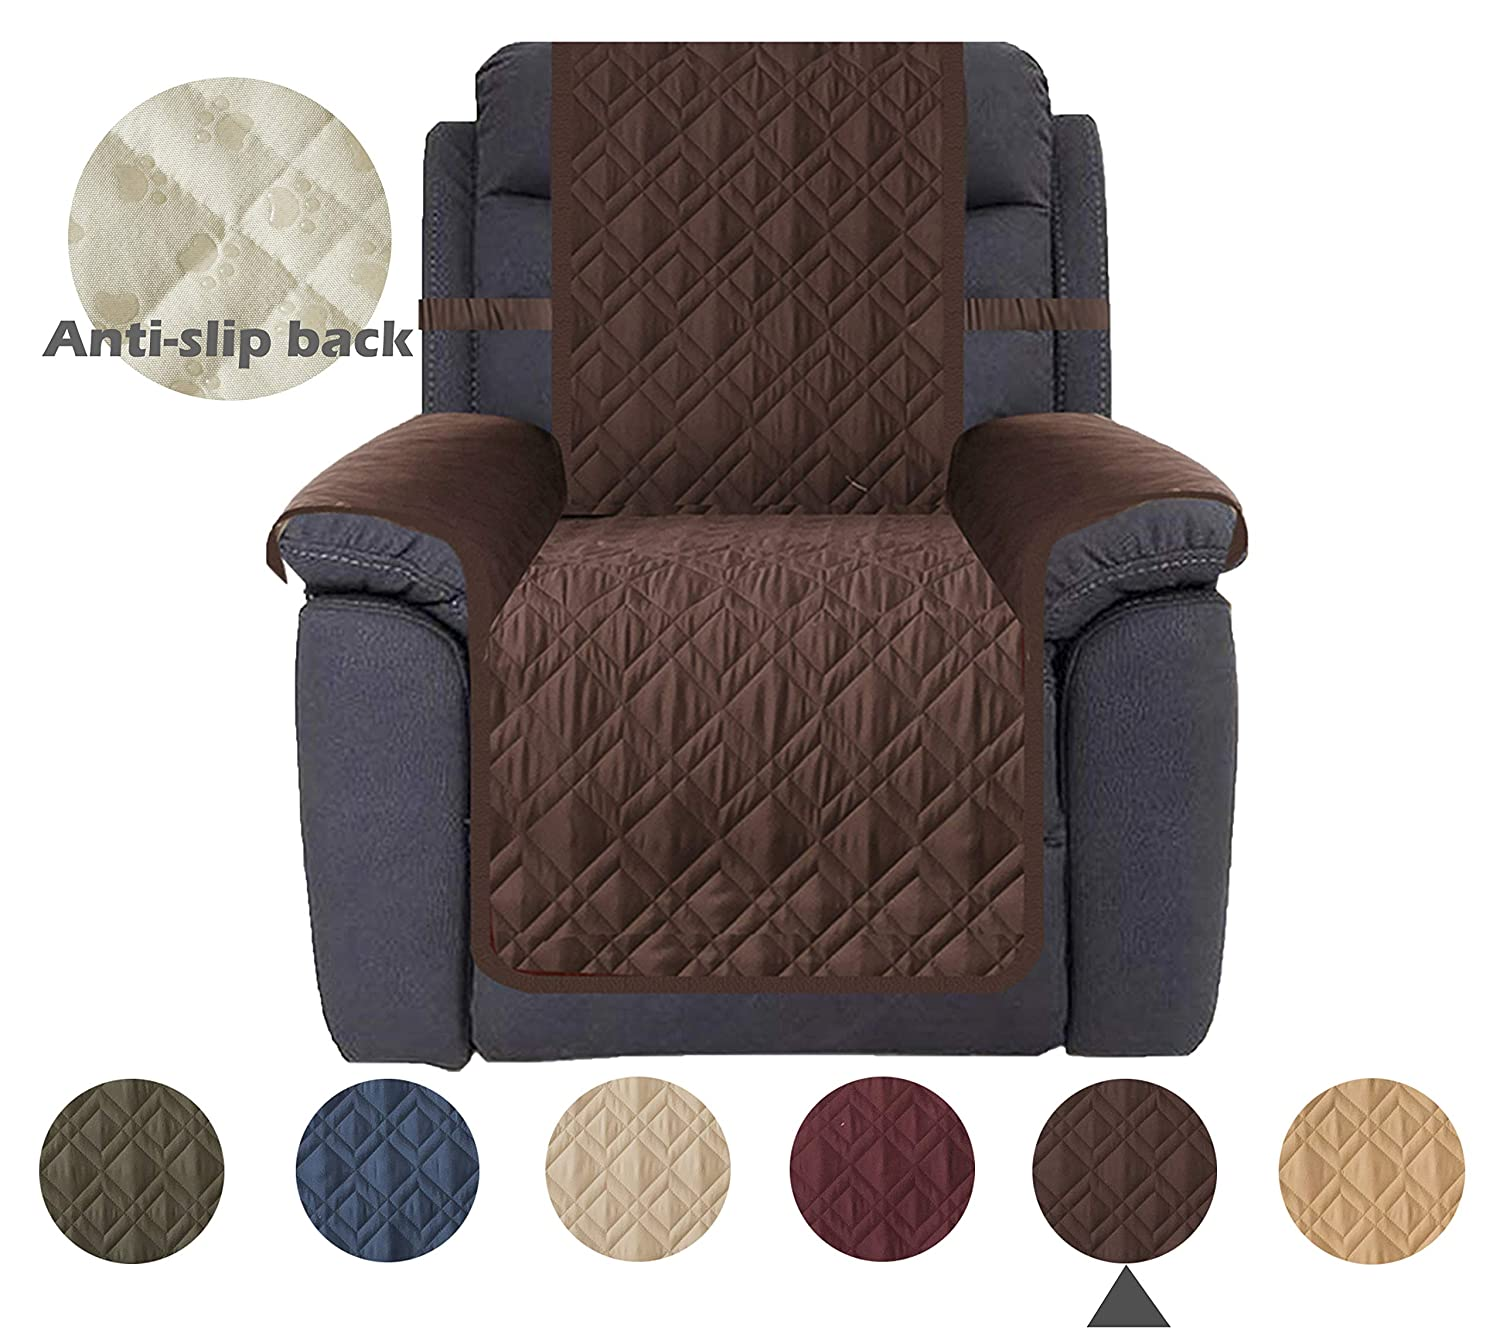 Astounding Ameritex Waterproof Nonslip Recliner Cover Stay In Place Dog Couch Chair Cover Furniture Protector Ideal Loveseat Slipcovers For Pets And Kids Customarchery Wood Chair Design Ideas Customarcherynet